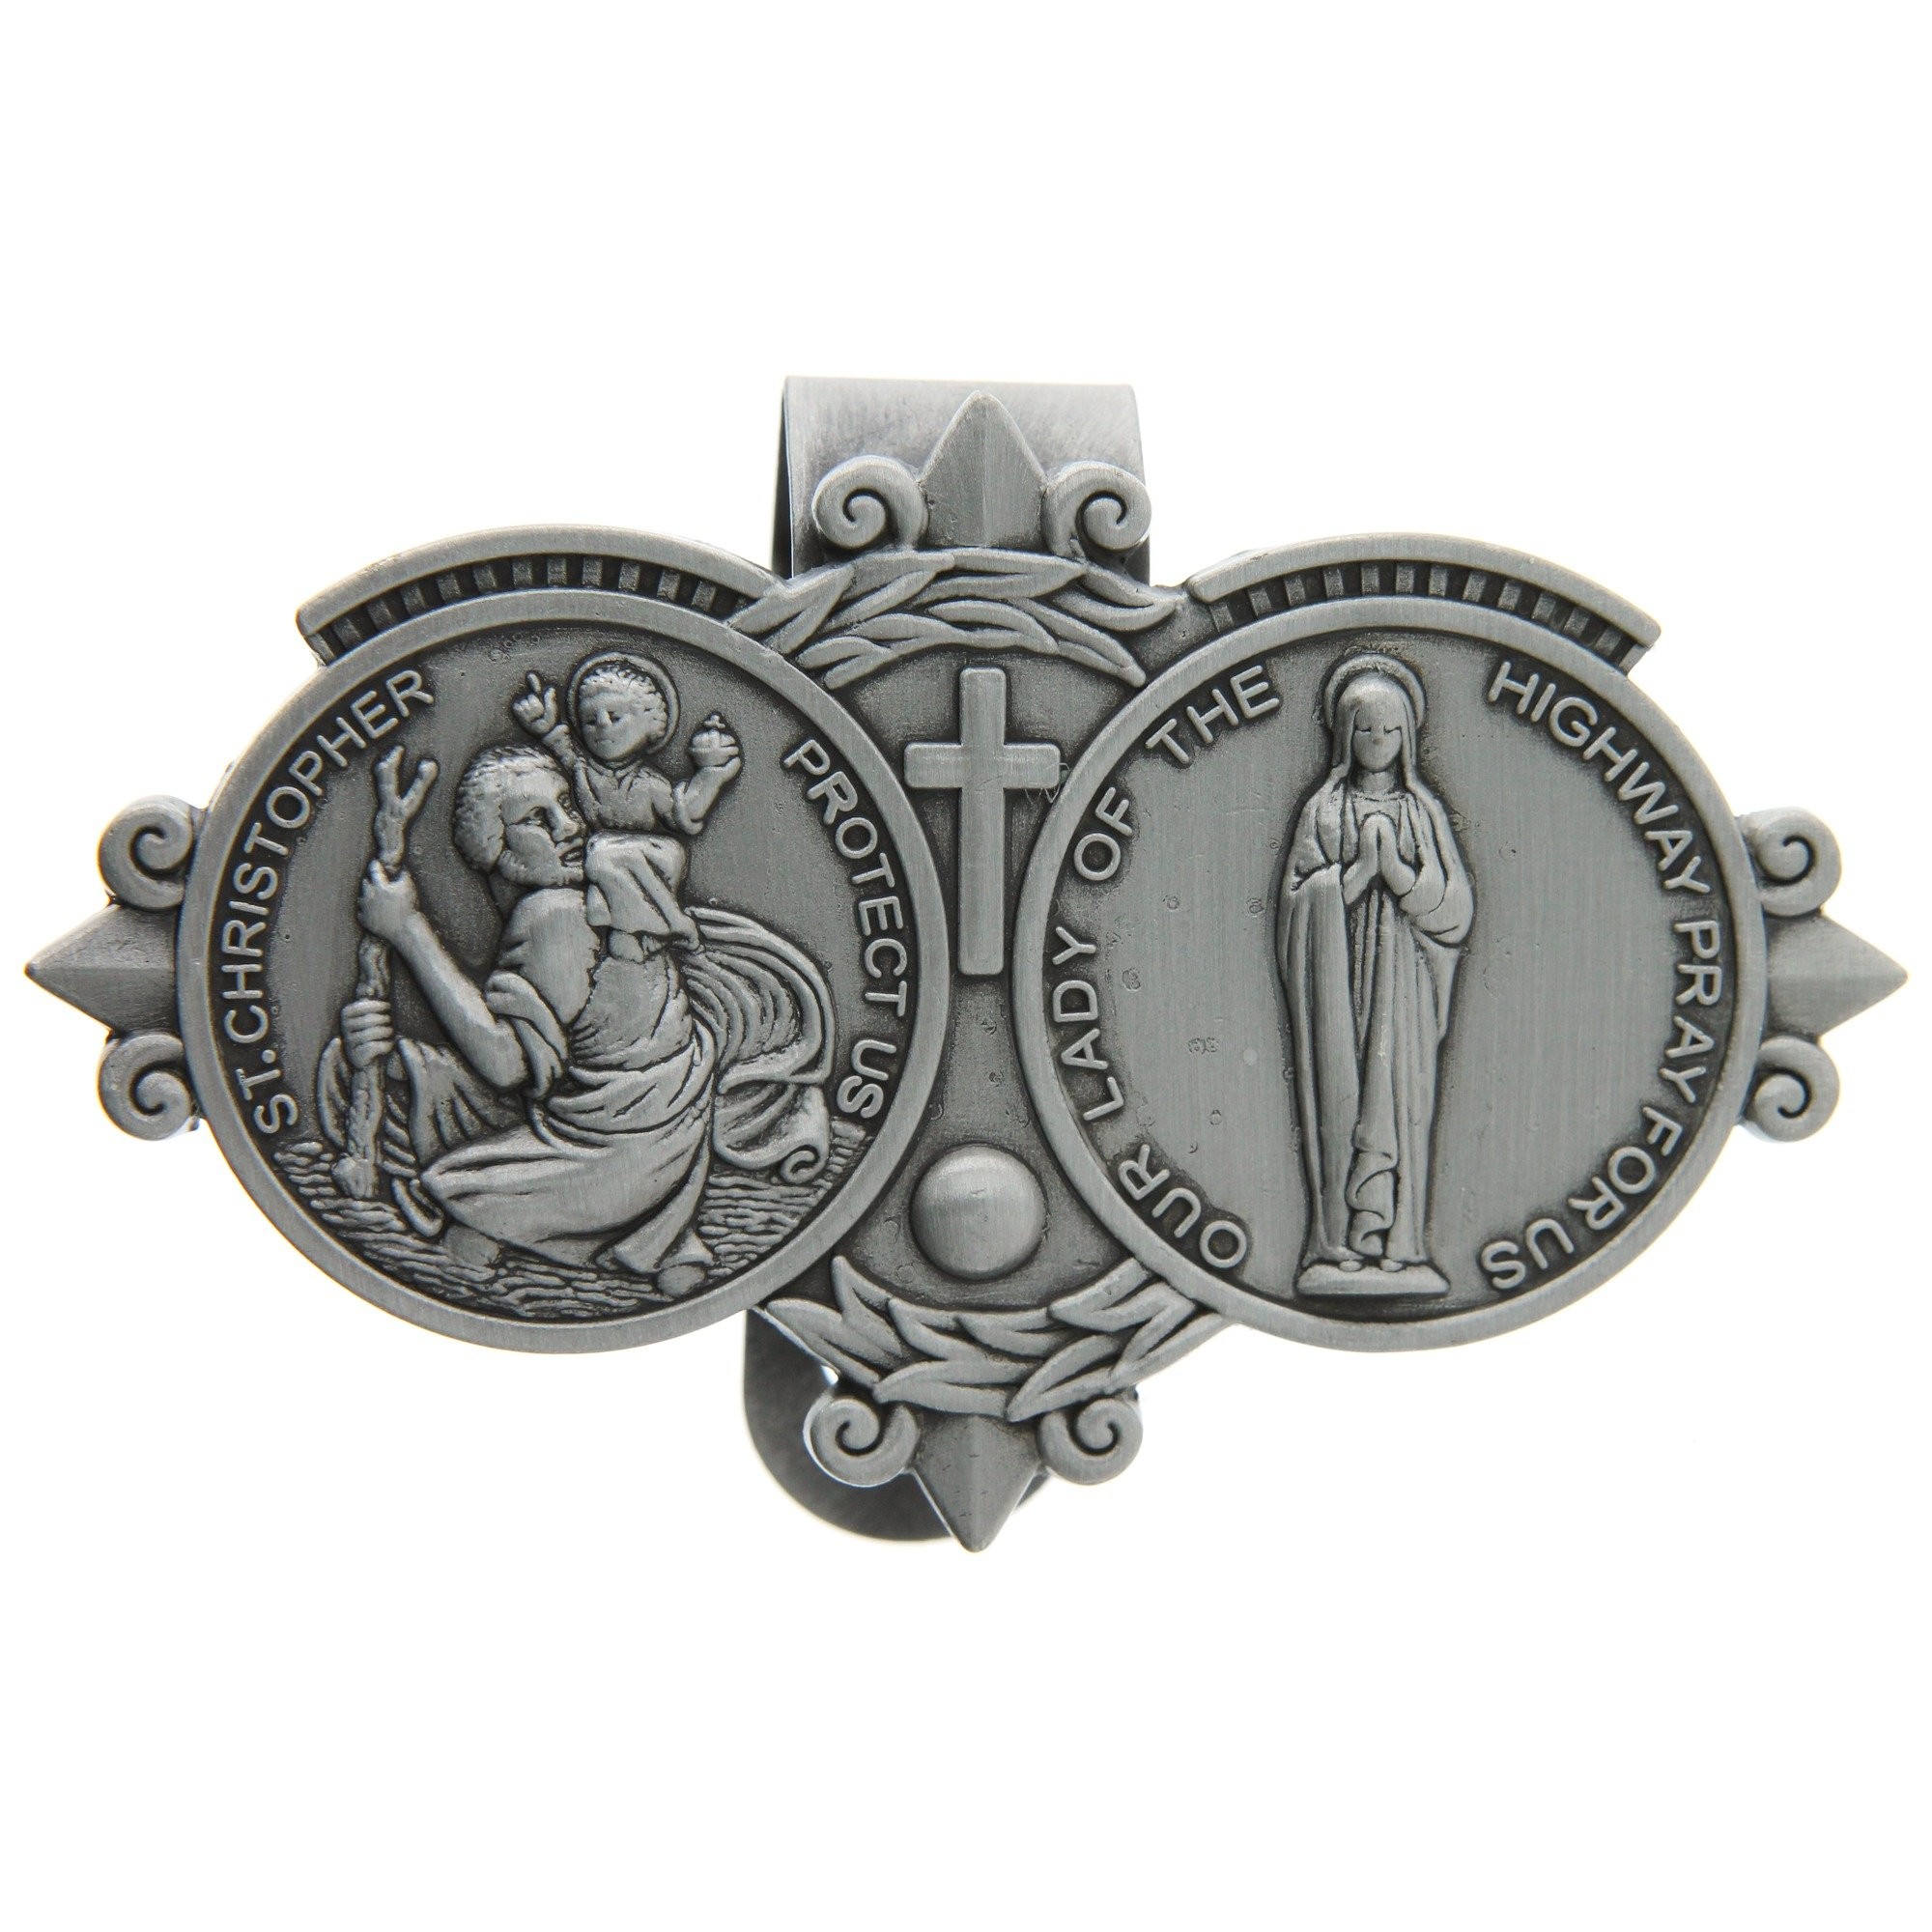 St. Christoper / Our Lady of the Highway Visor Clip by Devon